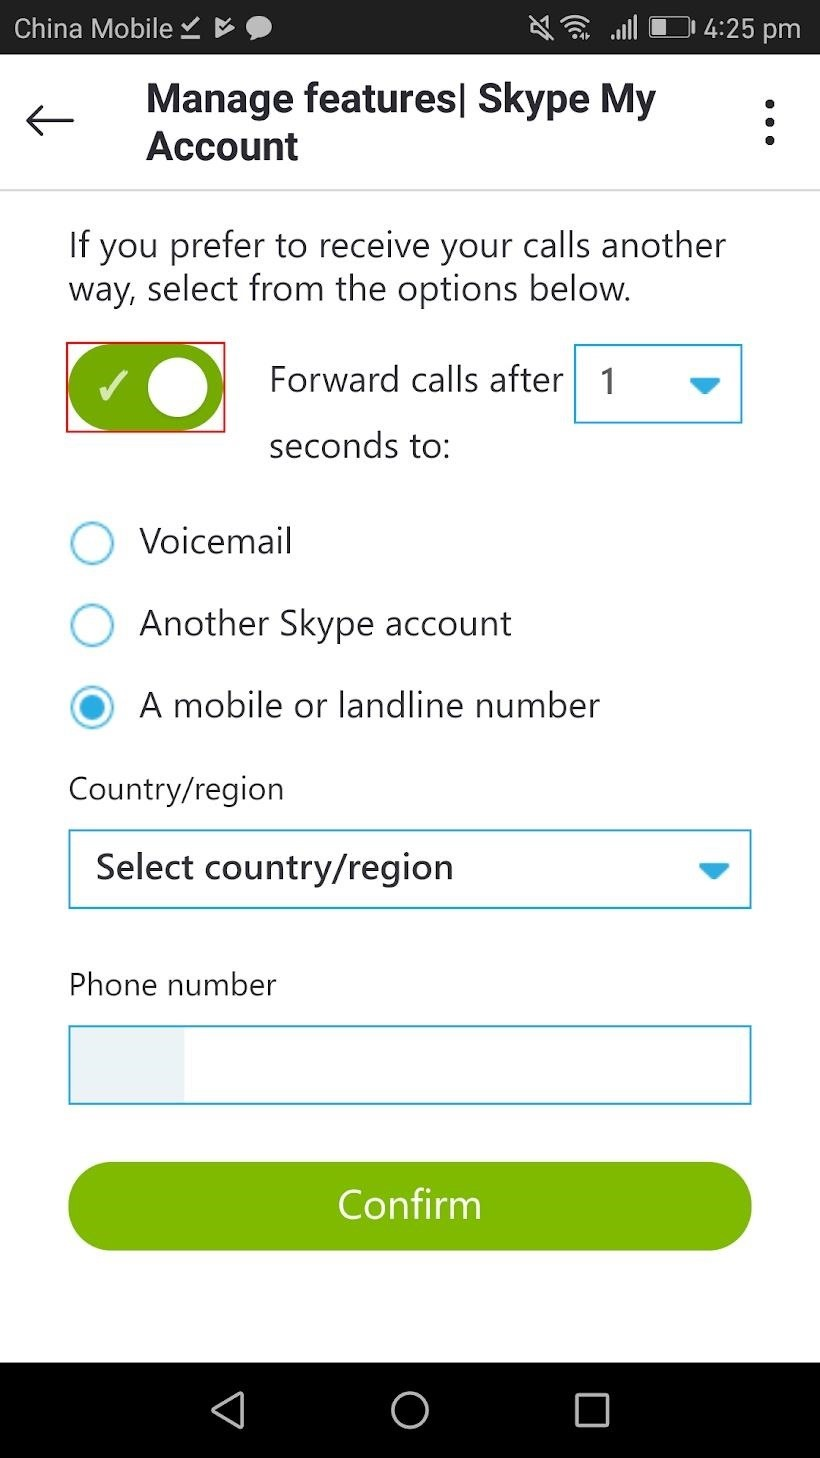 How to Forward Skype Calls to Your Phone Number on iPhone or Android